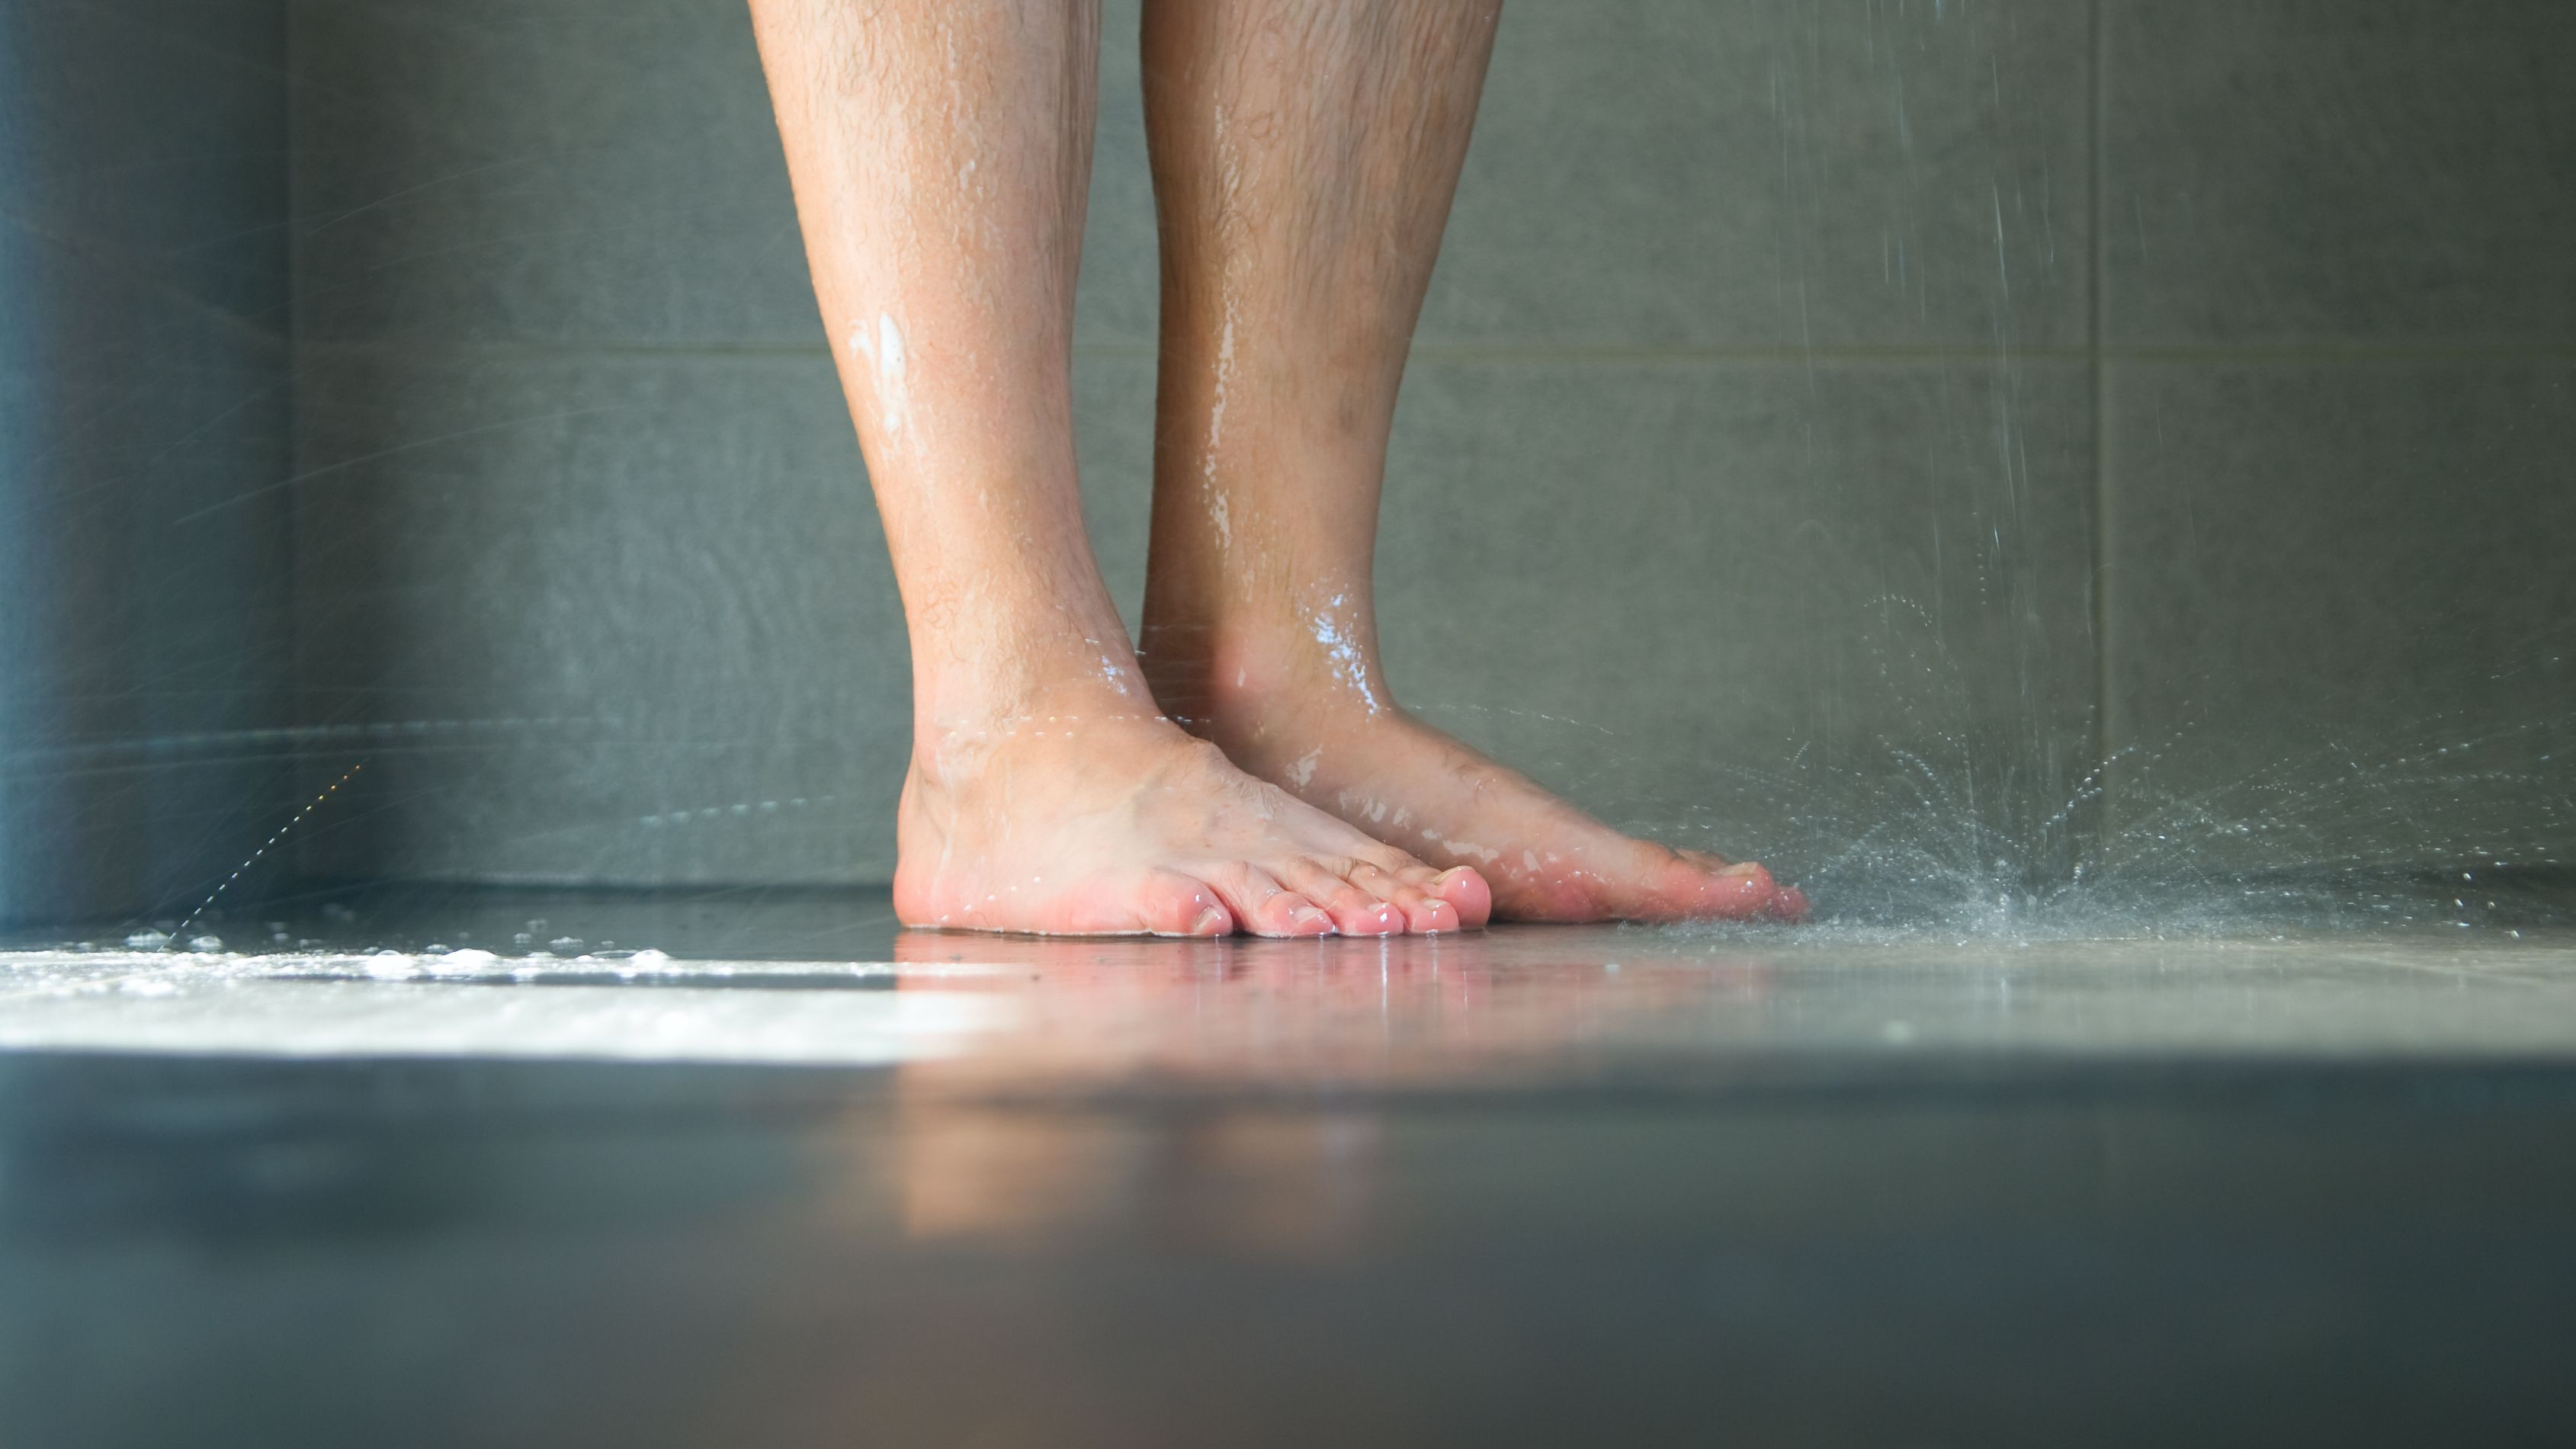 Italian showers: 5 disadvantages to take a closer look at